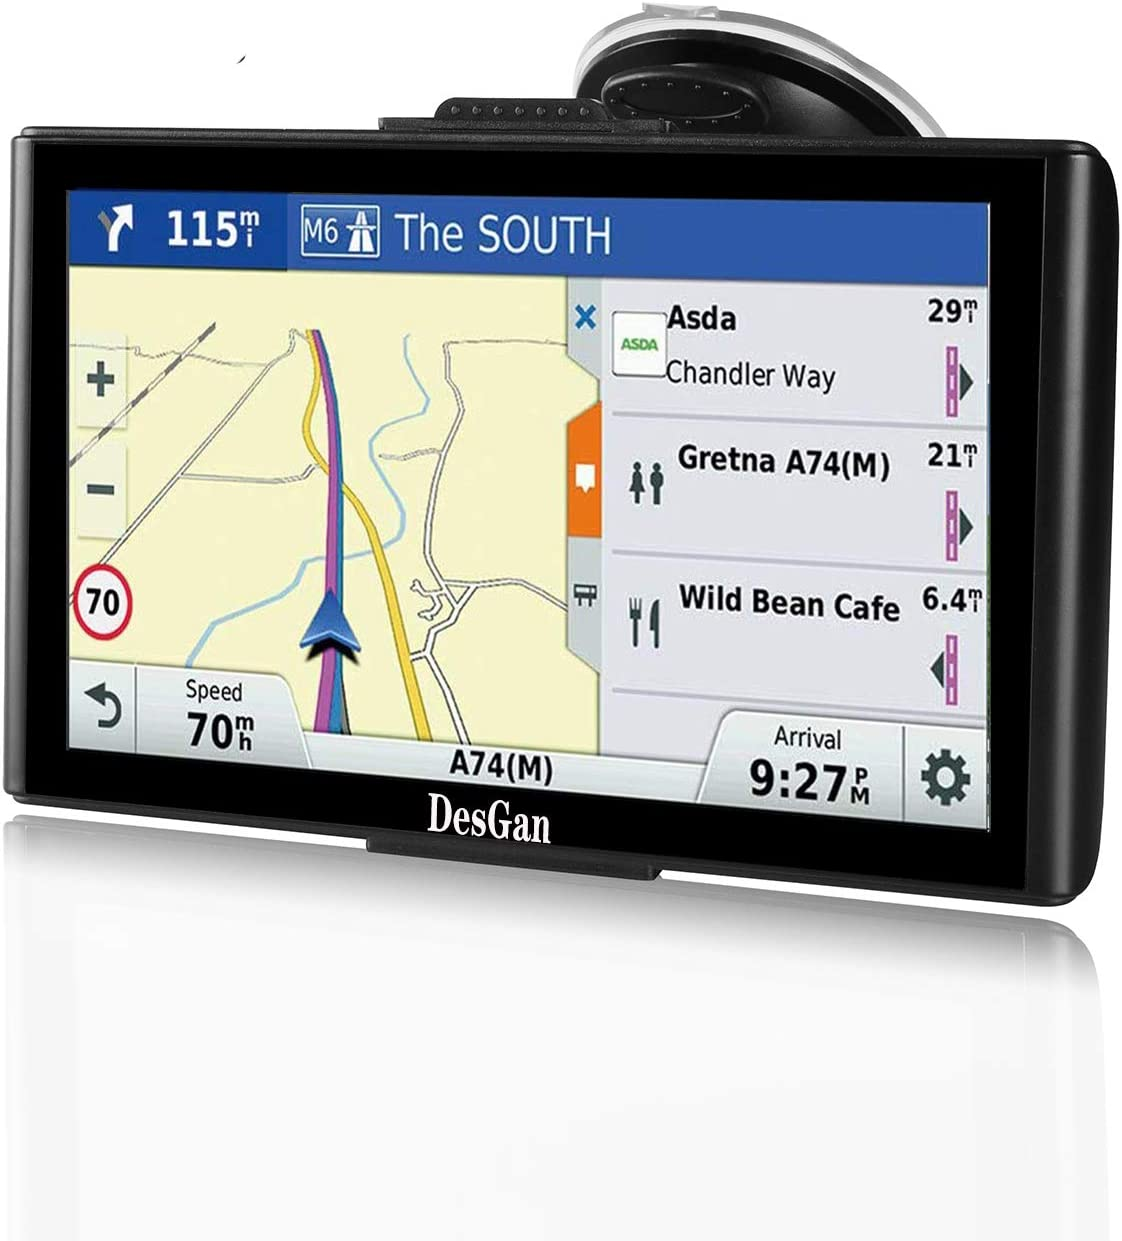 """GPS Navigation for Car, 7"""" HD Touch Screen 8GB-256MB Real Voice Spoken Turn-by-Turn Direction Reminding Navigation System for Cars, Rapid Positioning with Free Lifetime Map Update"""